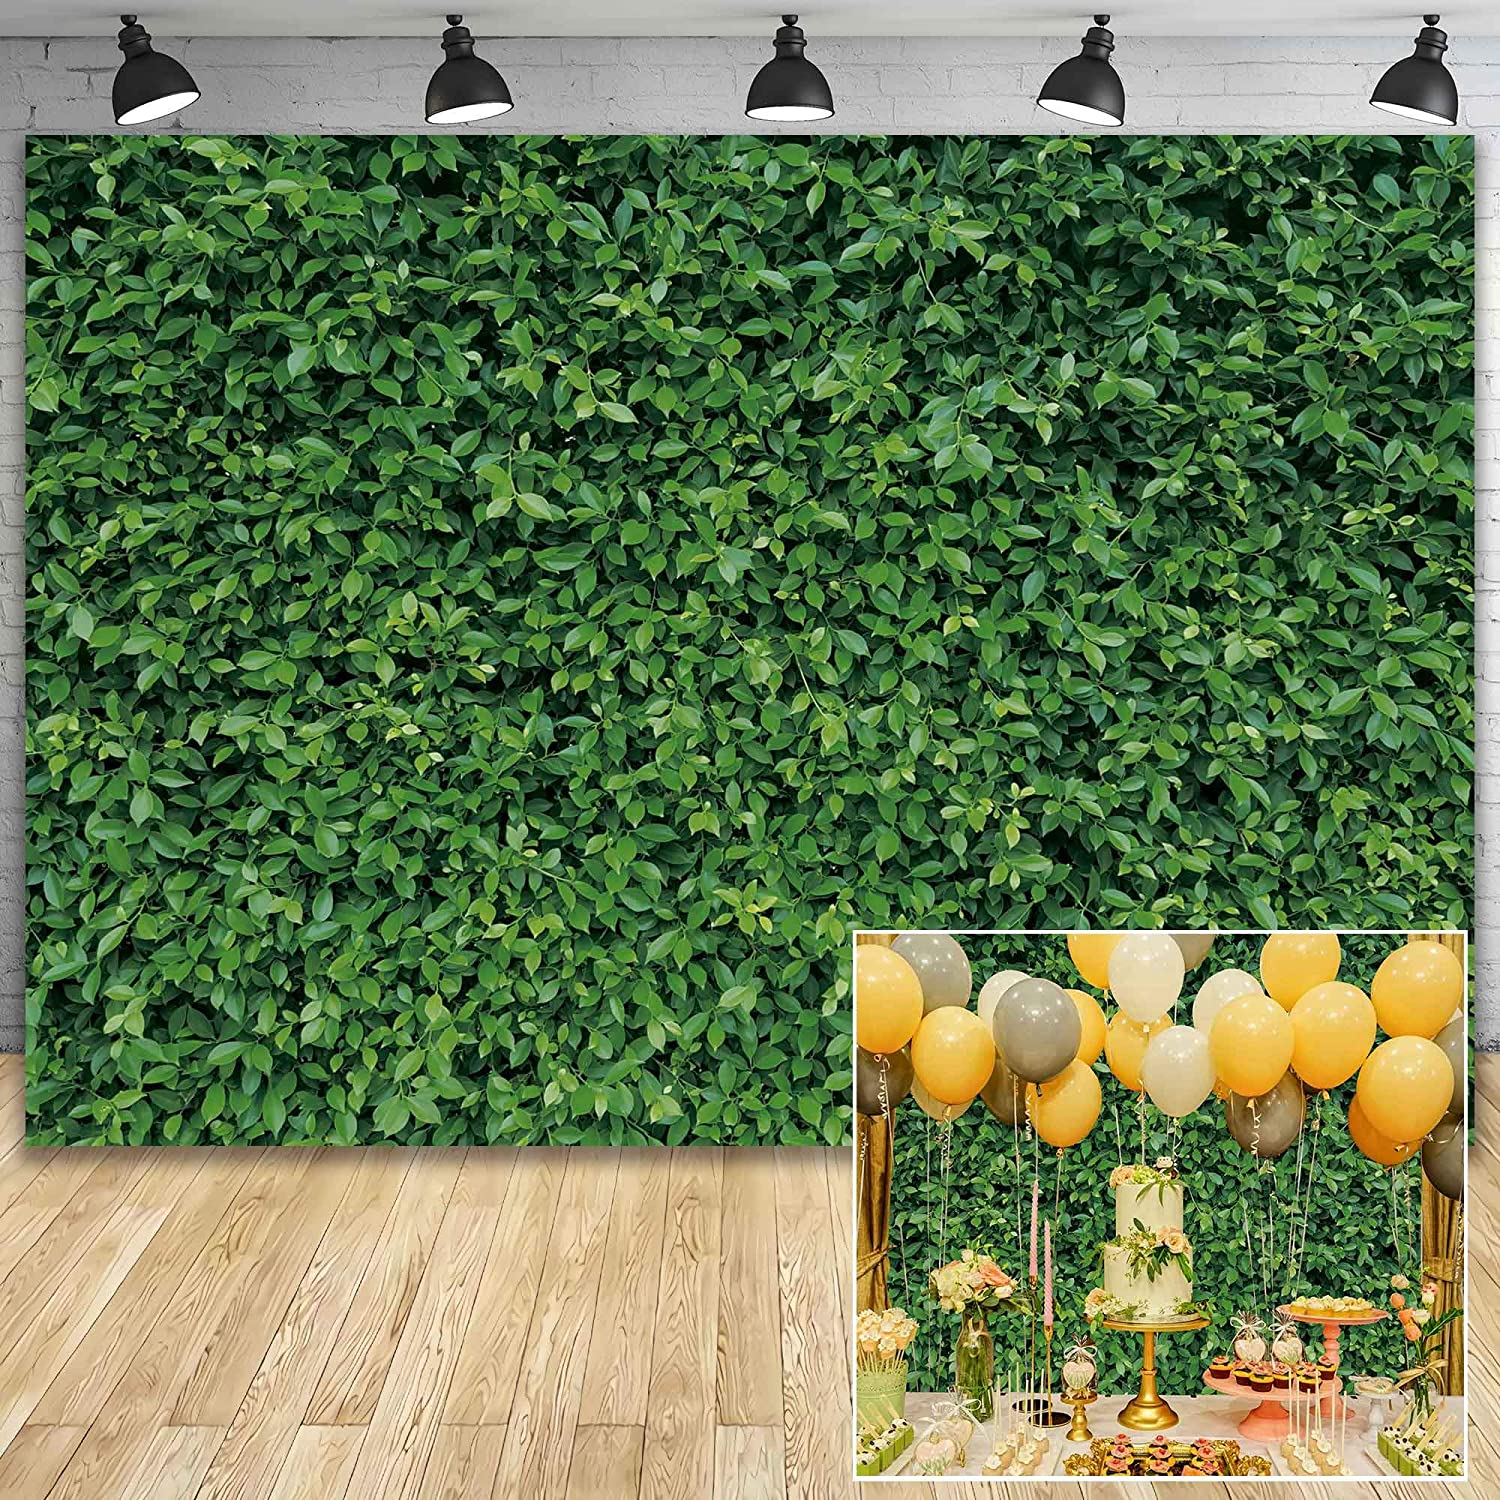 8x6.5ft Grunge Tropical Leaves Vivid Shoot Polyester Photography Background Summer Party Wedding Shoot Backdrop Indoor Decoration Wallpaper Foliage Studio Props